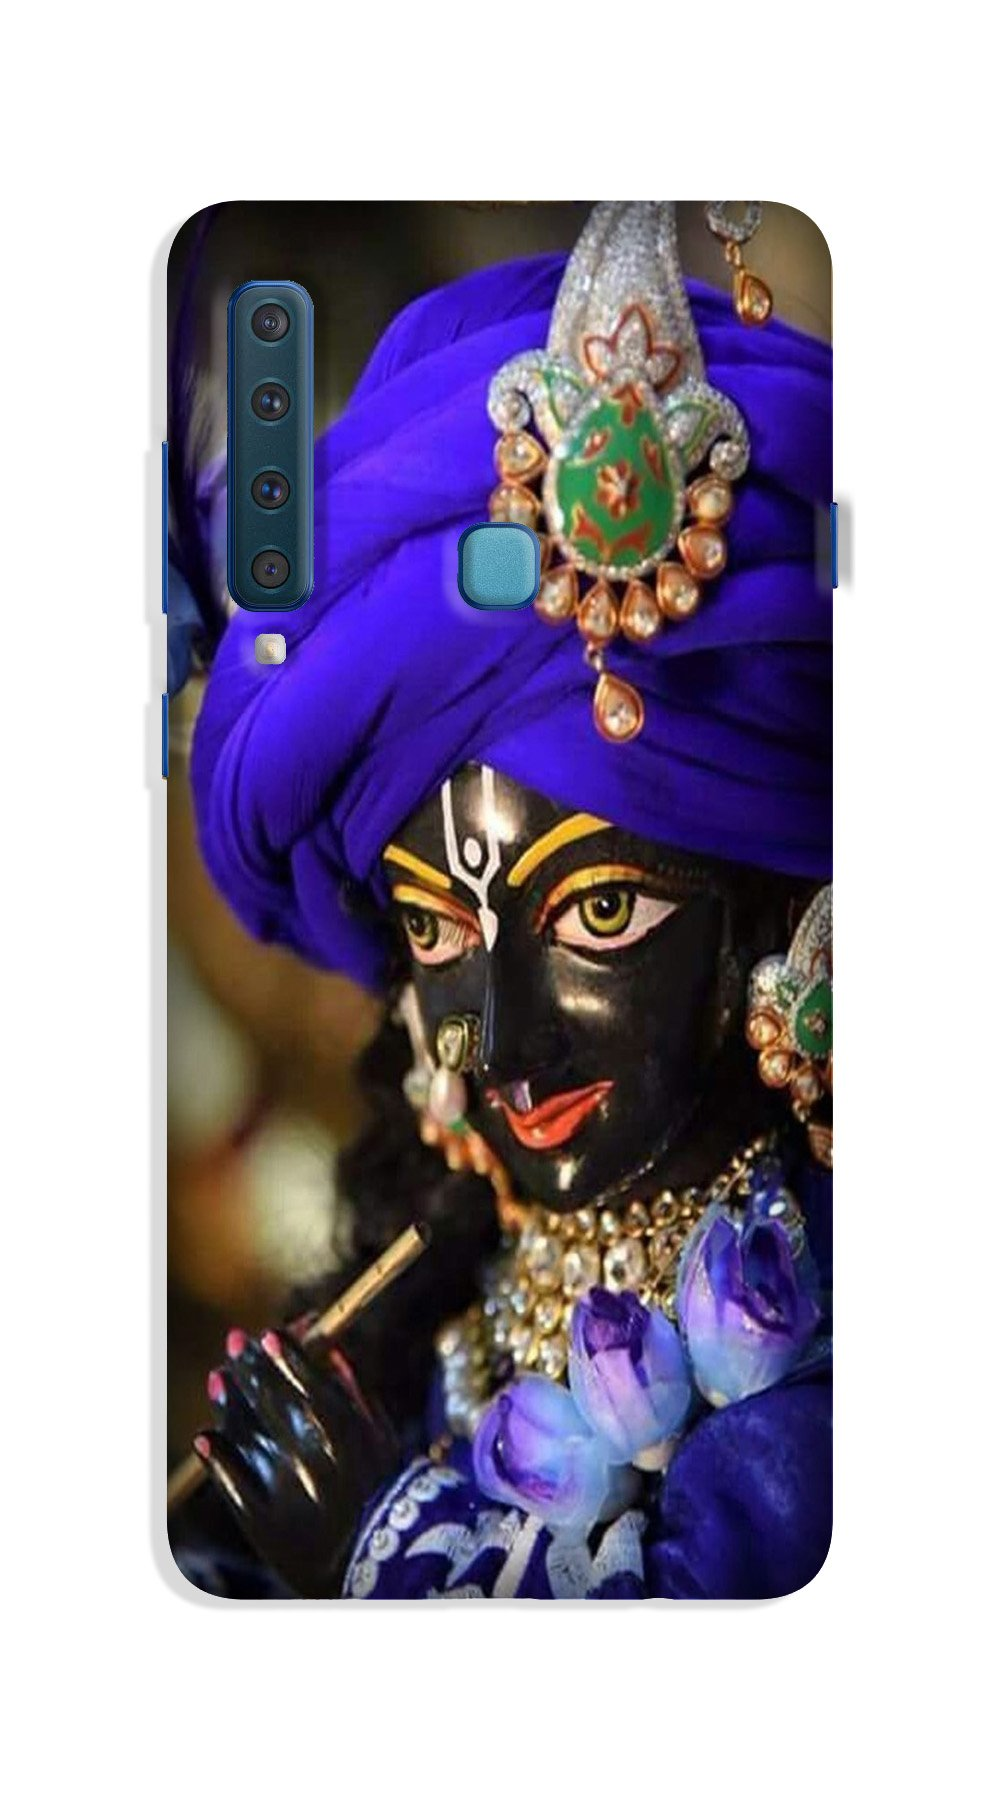 Lord Krishna4 Case for Galaxy A9 (2018)